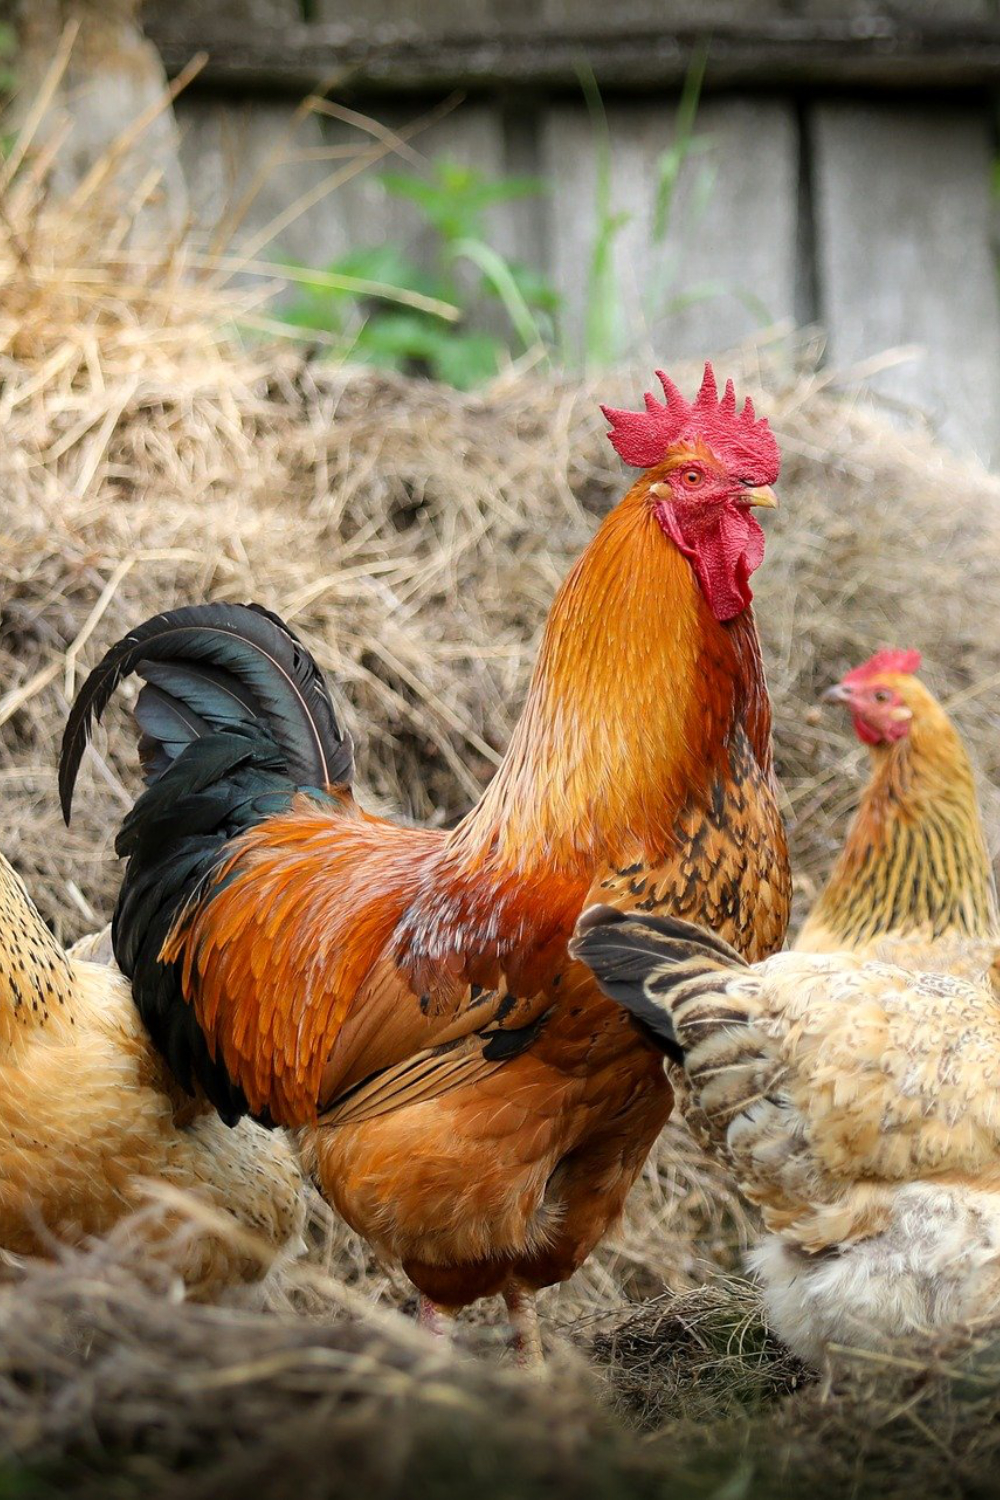 Prepper Diary February 21: Our Chicken Coop Plans Get Updated